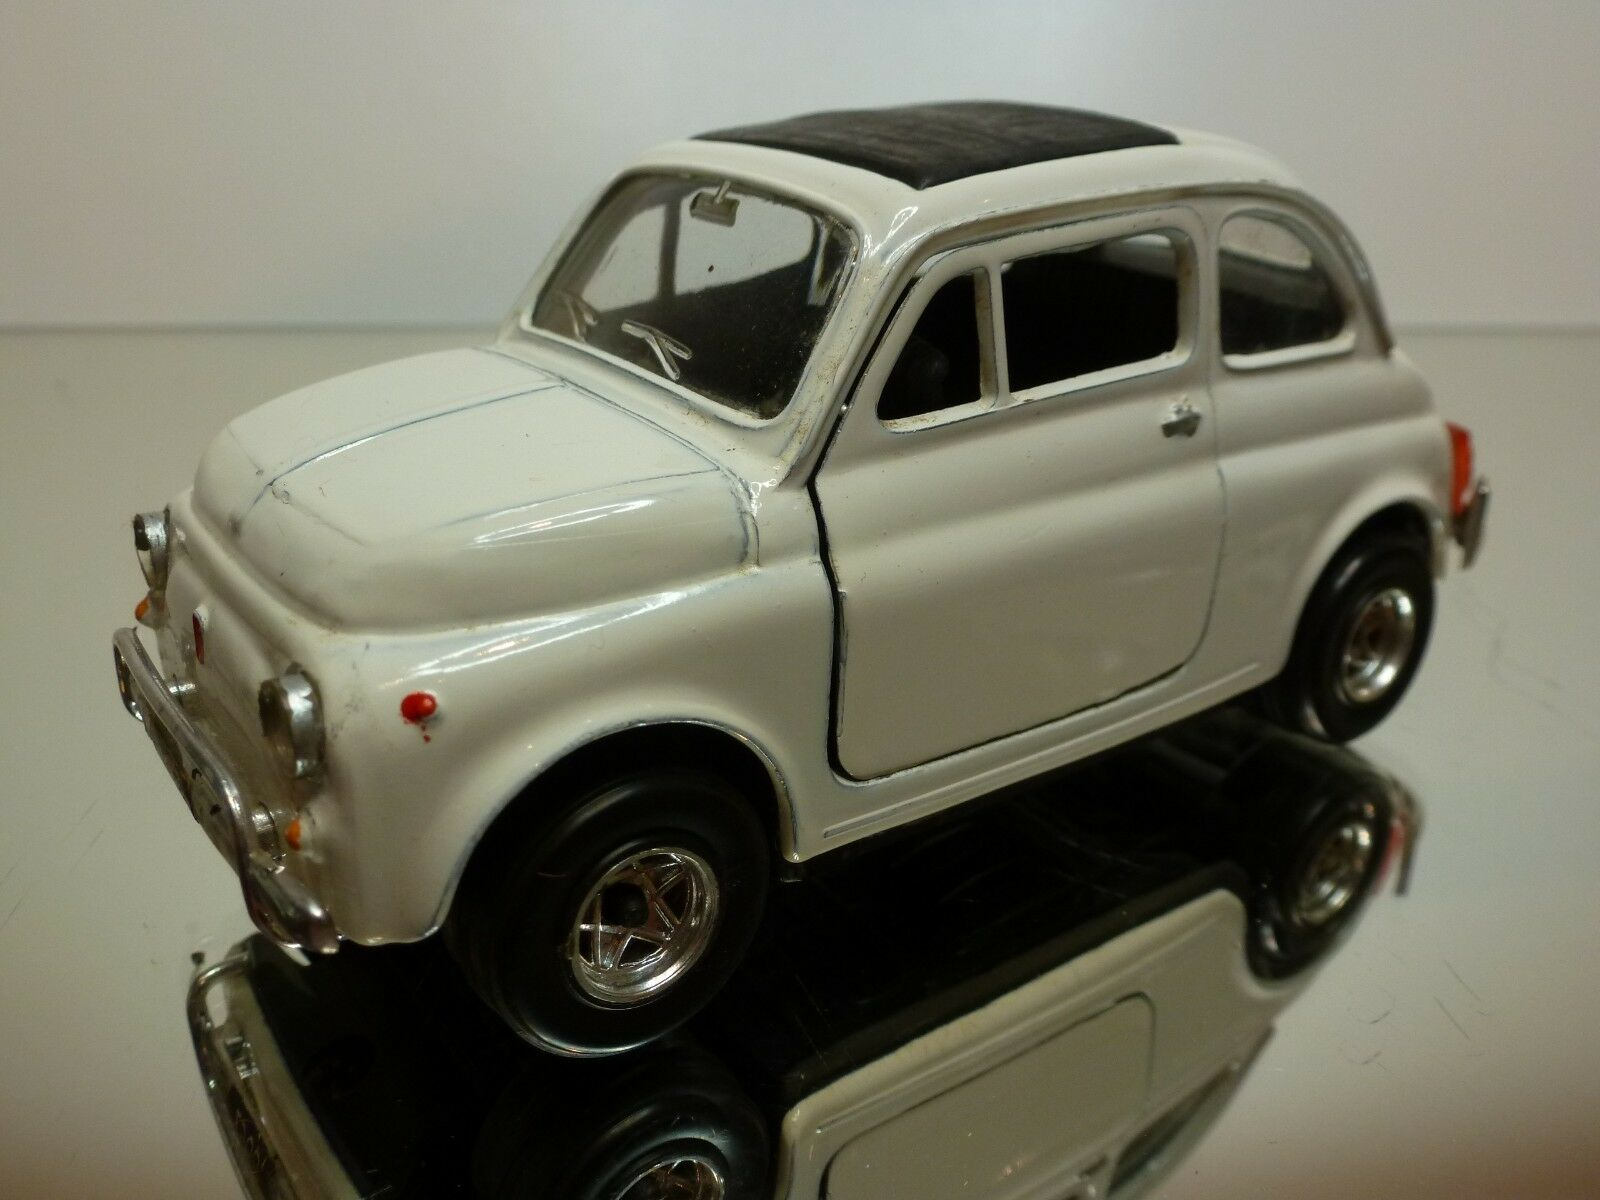 POLISTIL S599 FIAT 500L - WHITE 1:25 - GOOD CONDITION